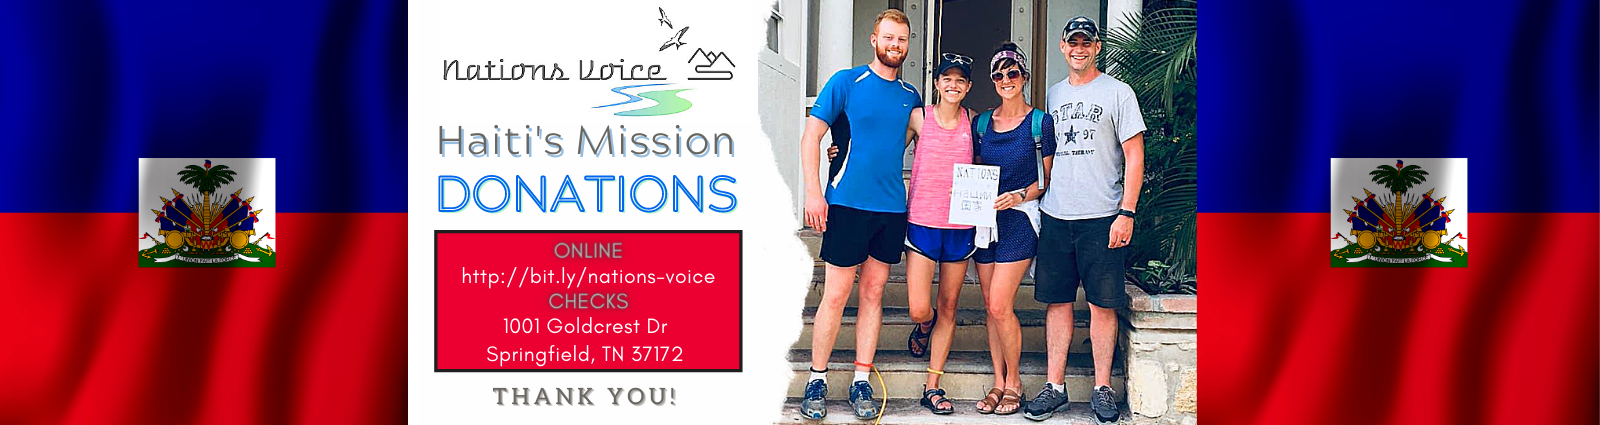 Nations Voice Haiti Mission